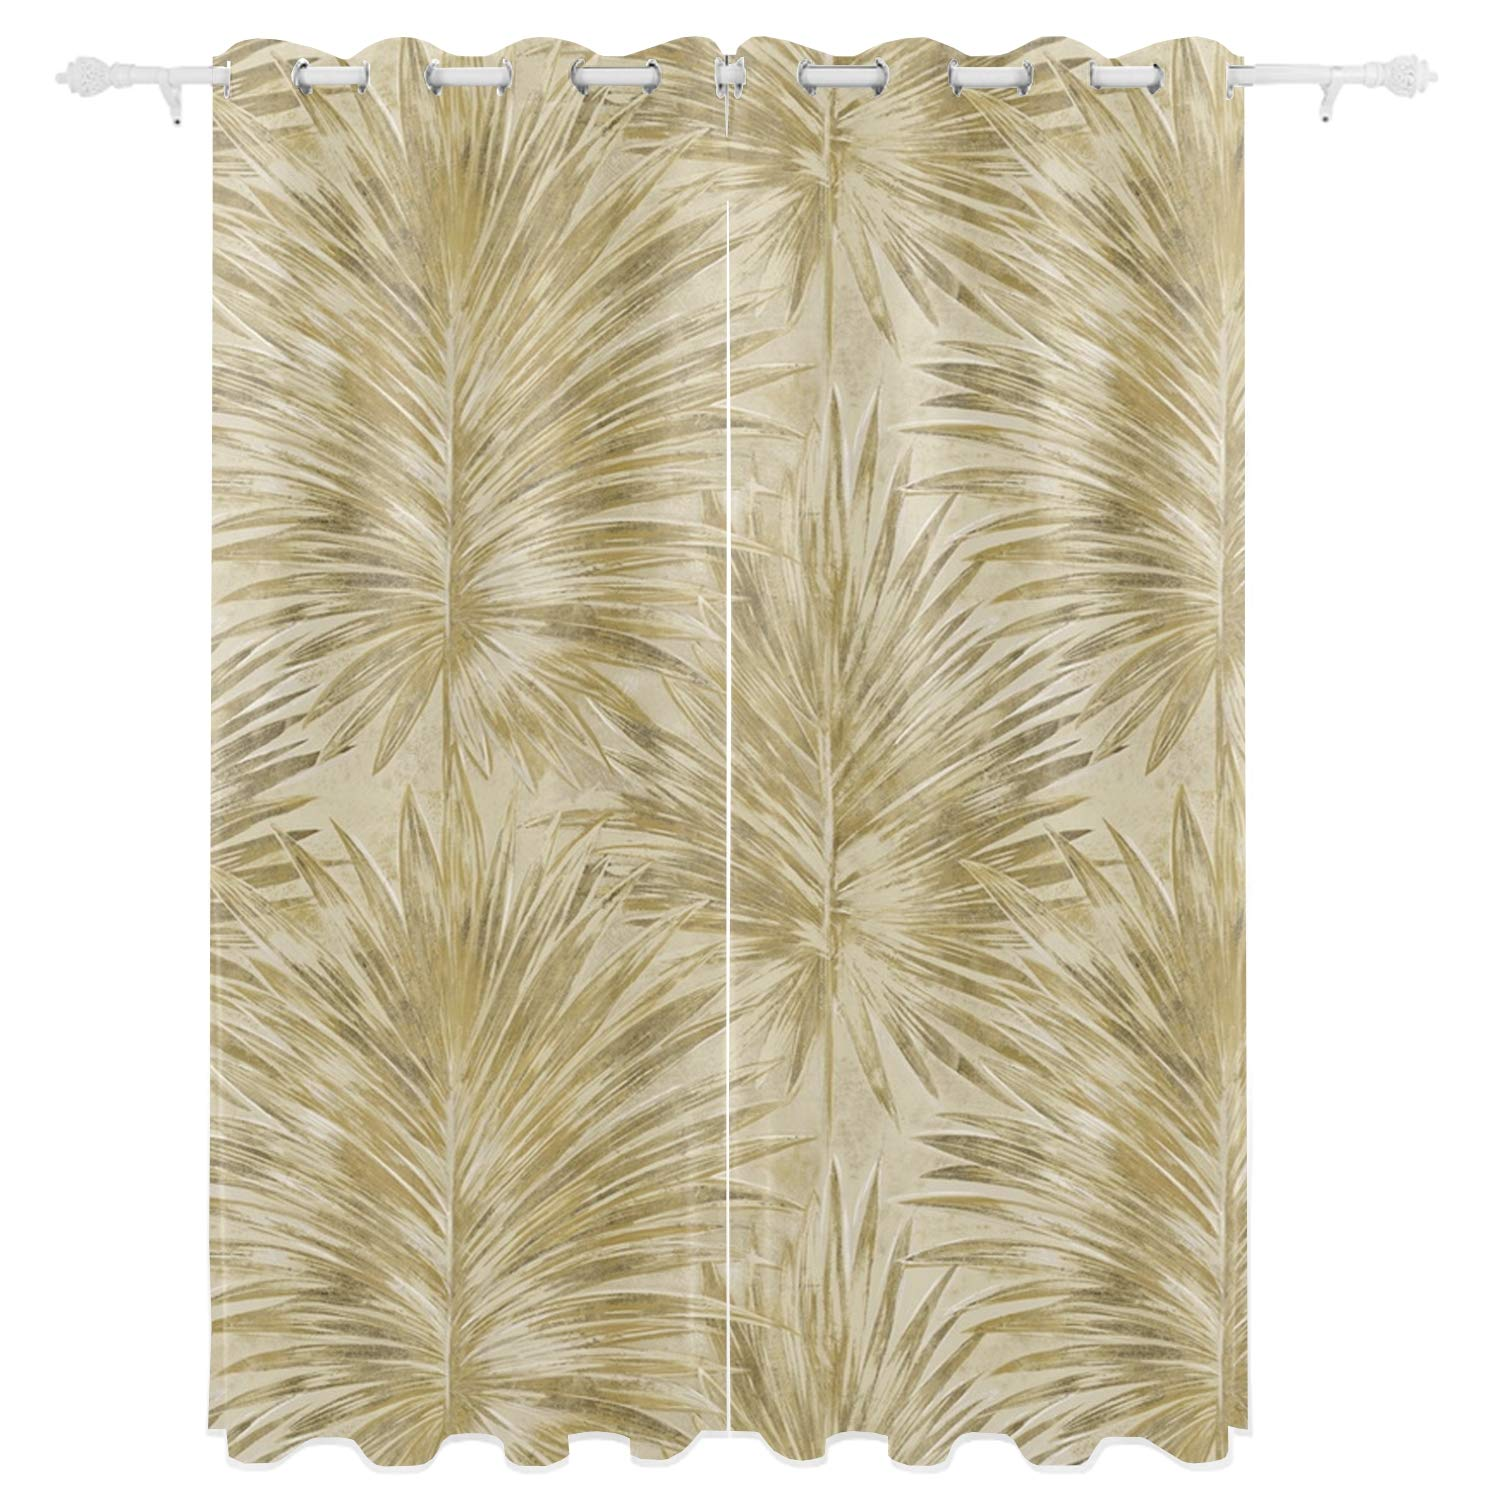 Sbfhdy Blackout Curtain Panels Window DraperiesPattern On Paper 55x84 Inch 2 Pieces Insulating Room Darkening Blackout Drapes for Bedroom